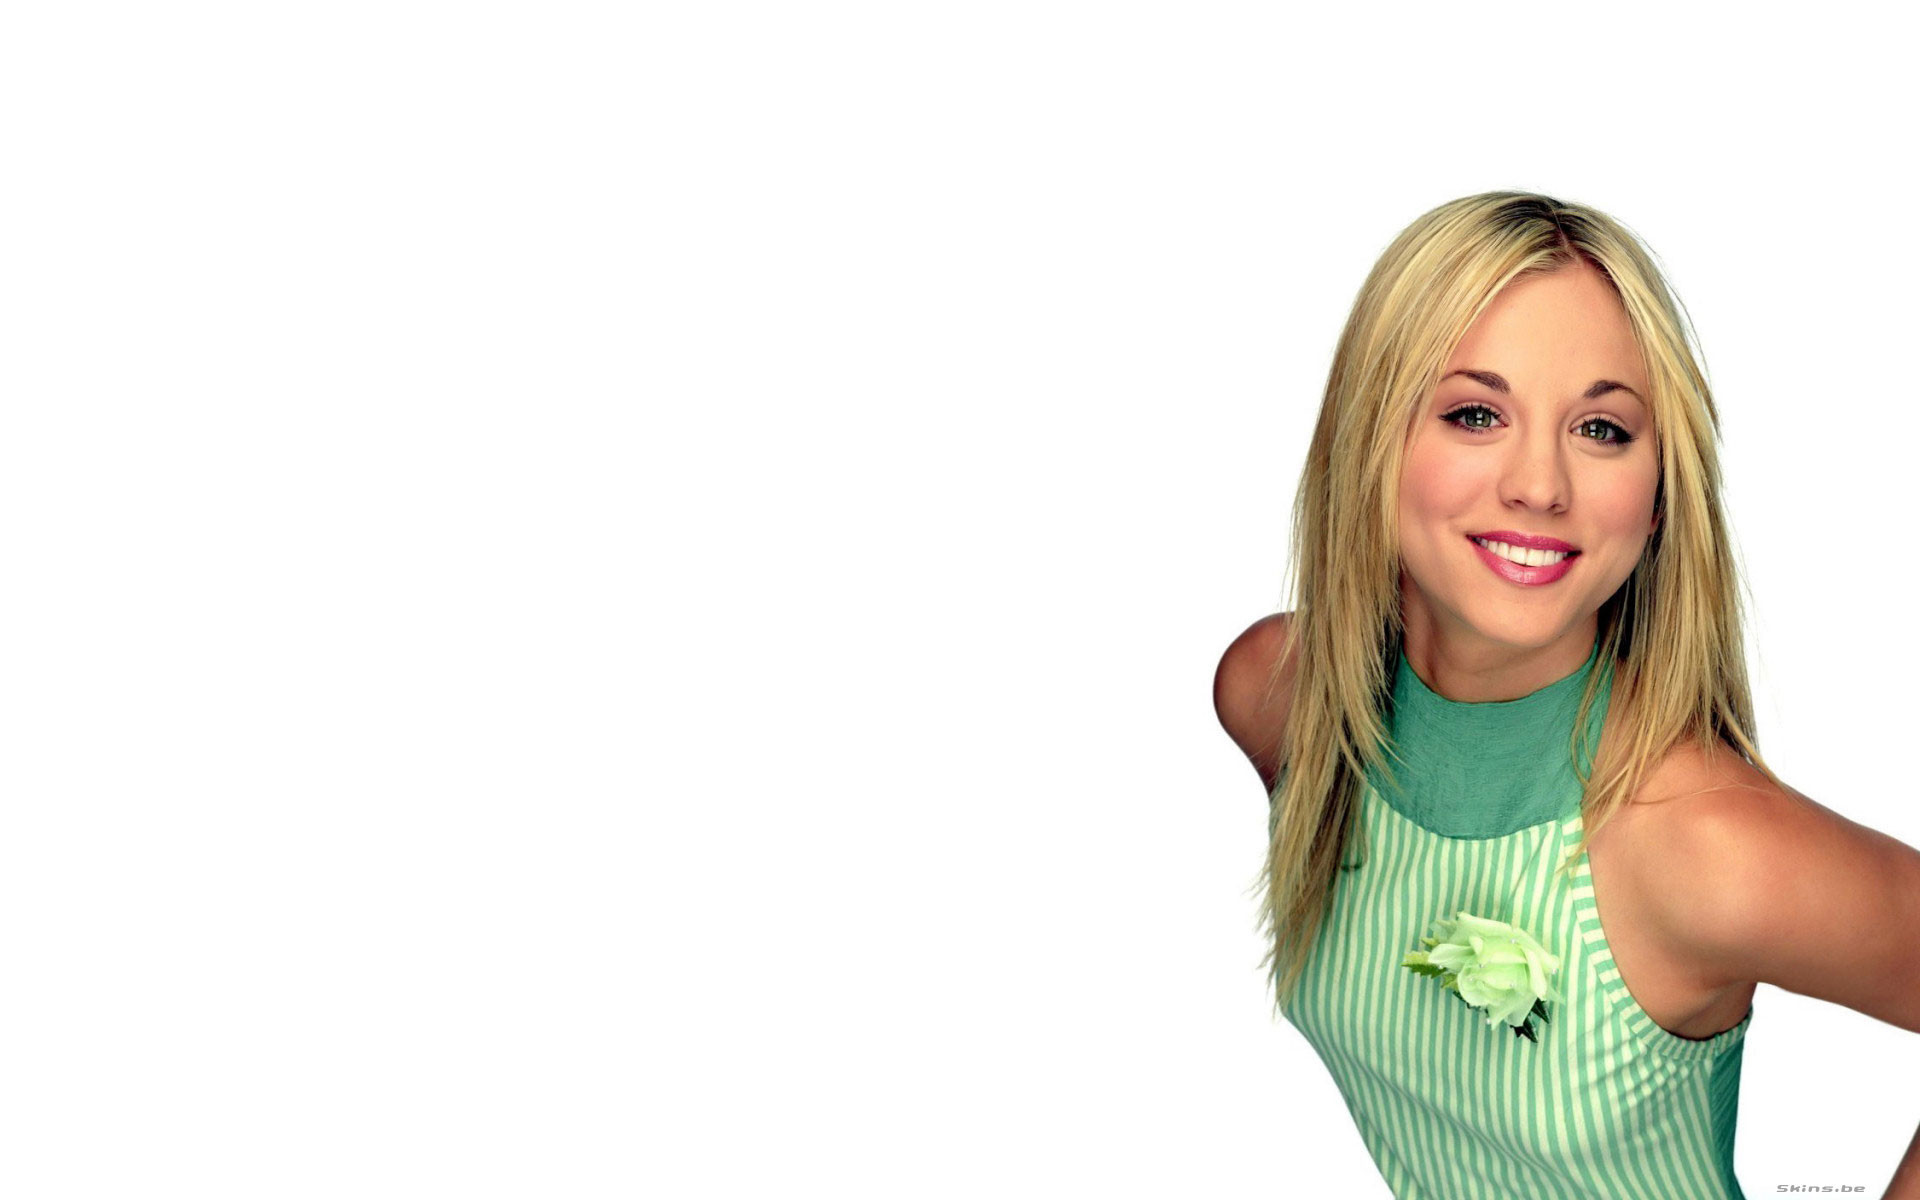 kaley-cuoco-wallpapers-14